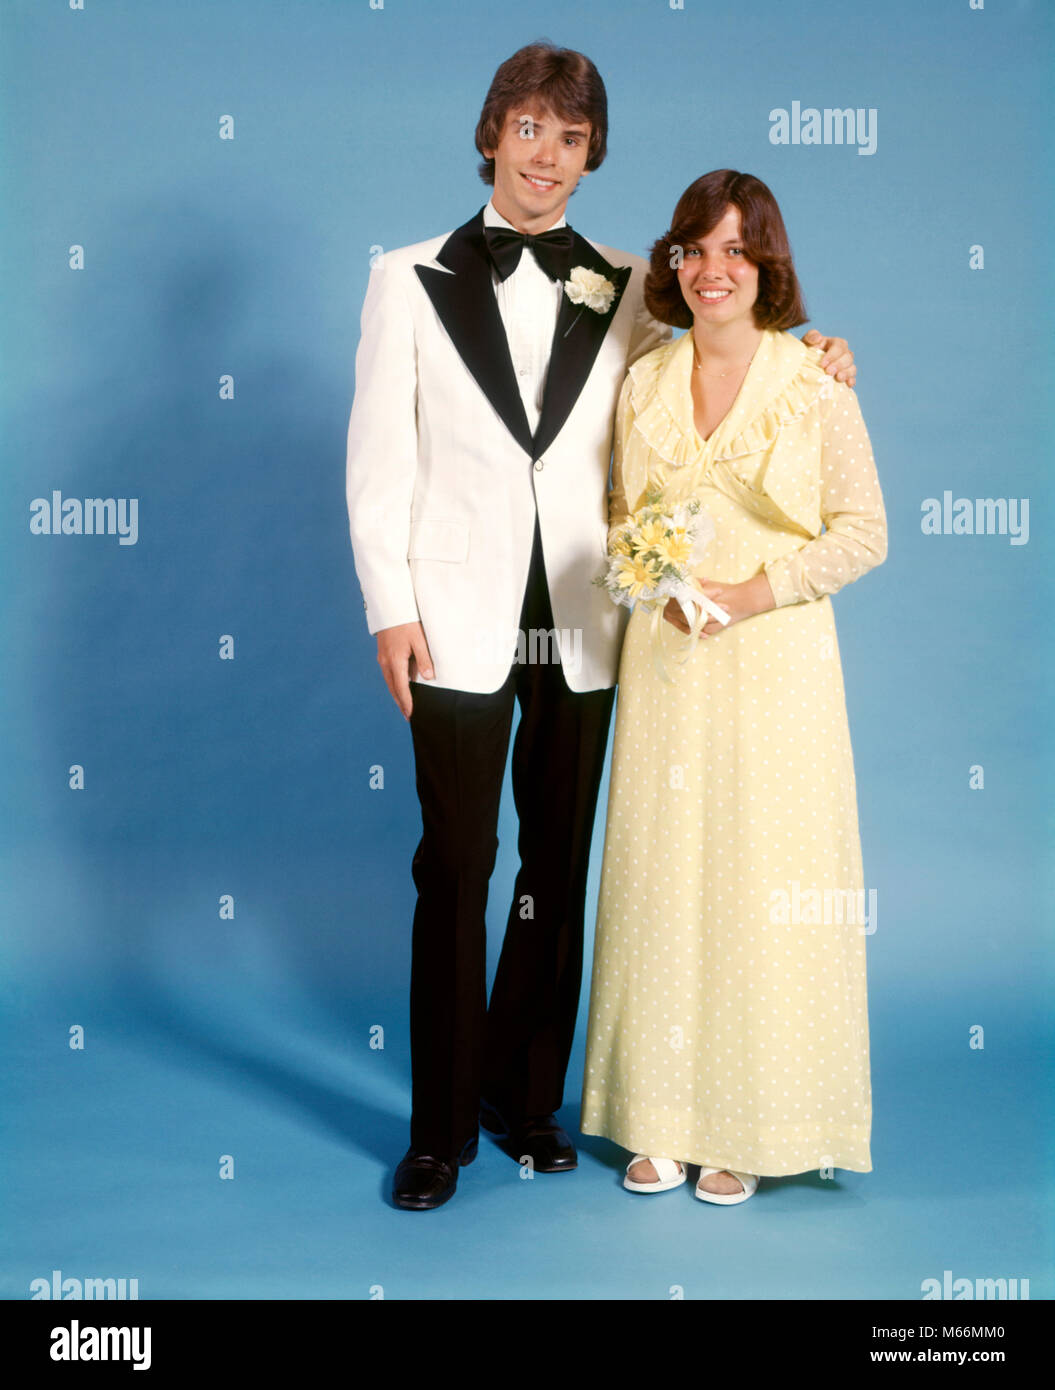 Vintage Tux Stock Photos & Vintage Tux Stock Images - Alamy